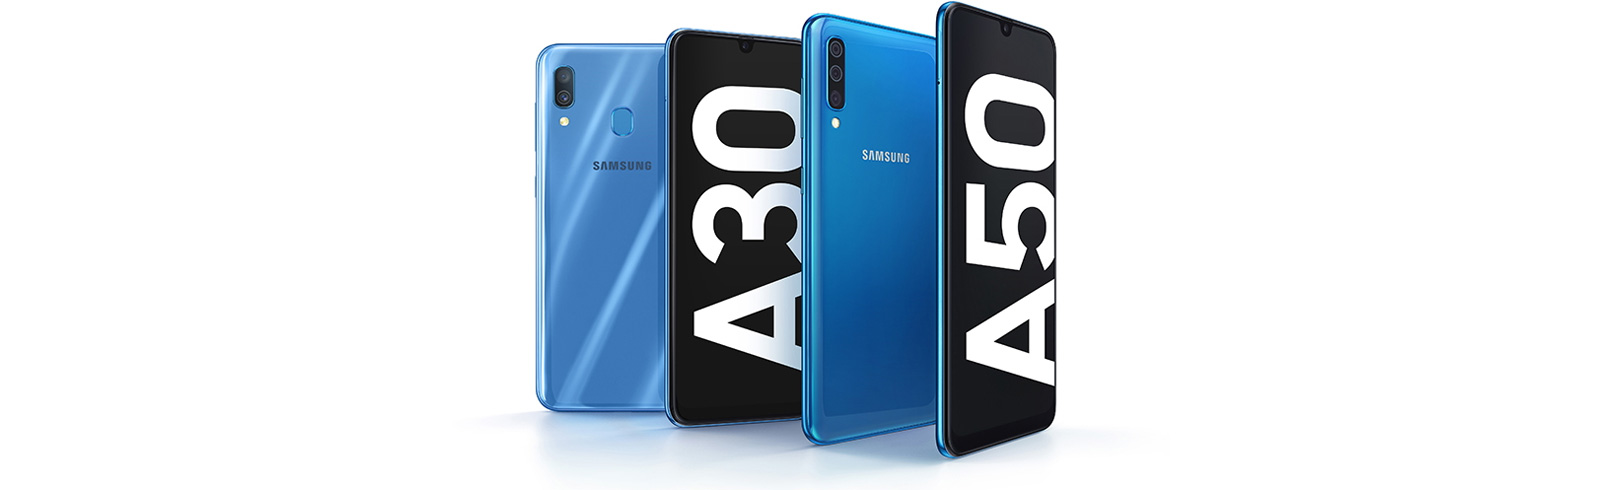 The new Samsung Galaxy A series goes official, starts with the Galaxy A50 and Galaxy A30